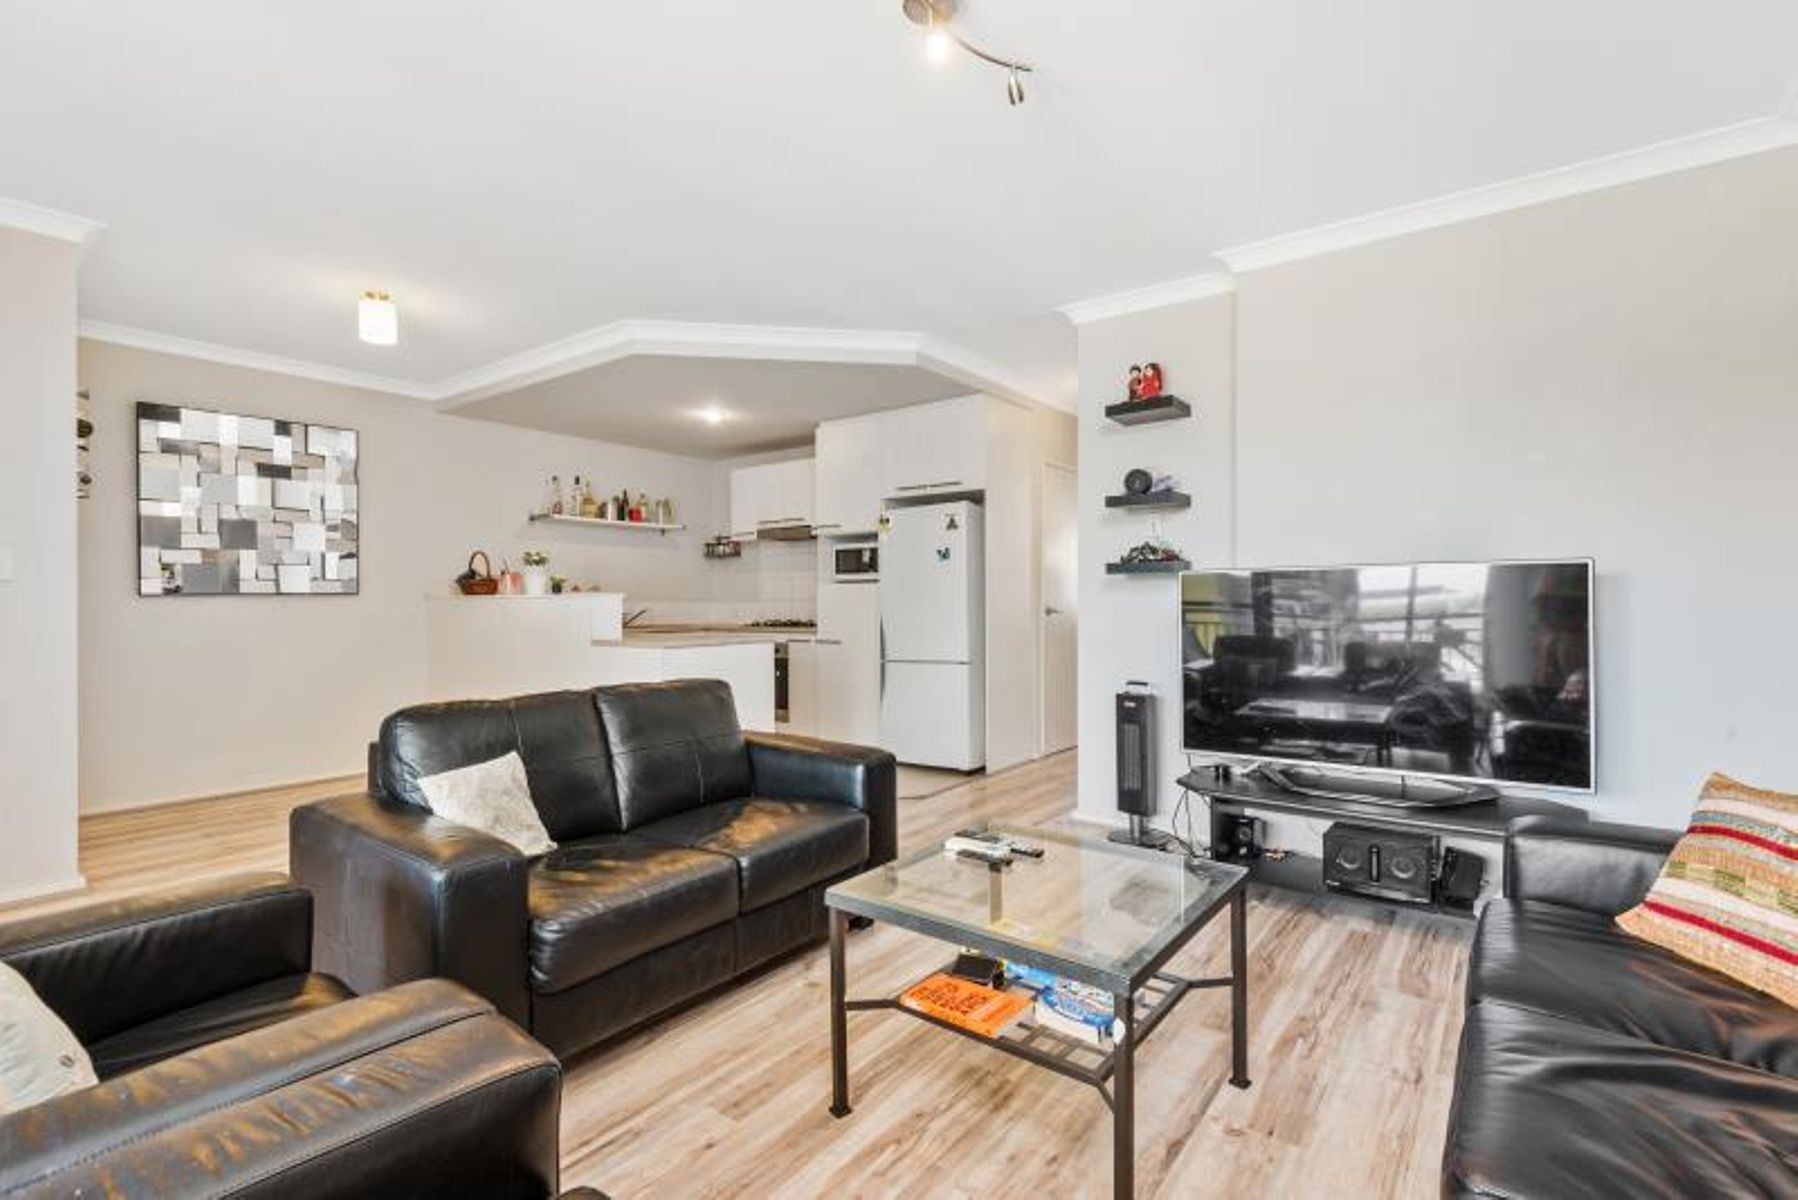 Houses for Rent Perth | 80/250 Beaufort Street, Perth, WA 6000